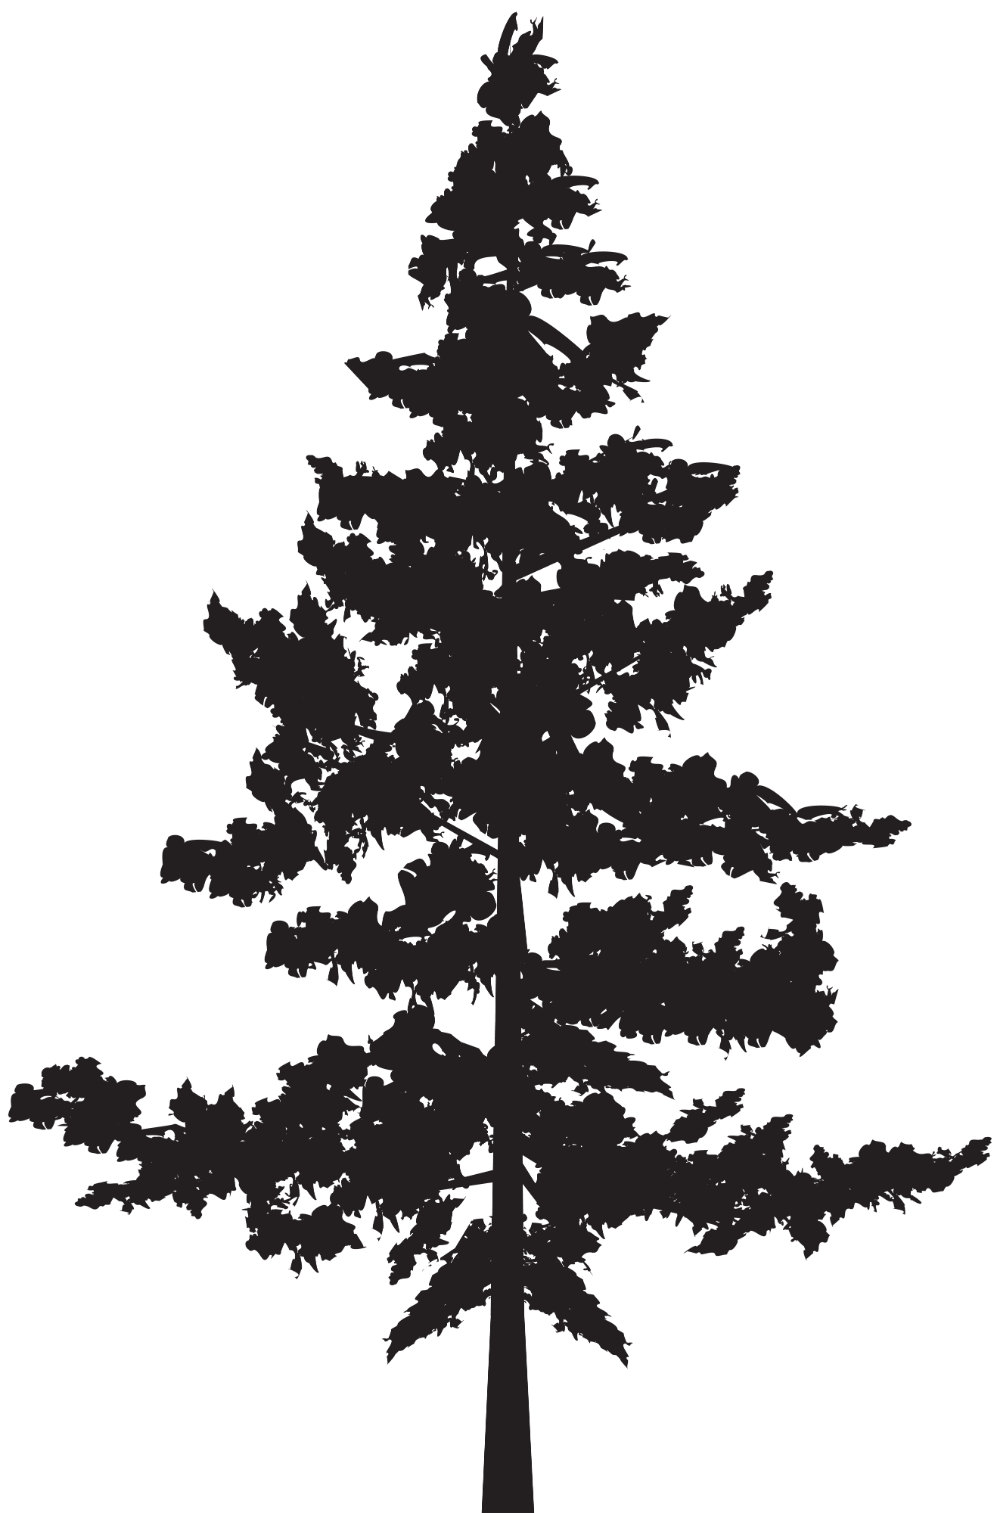 Pin By Miguel Ordonez On Homeschool Pine Tree Silhouette Silhouette Clip Art Tree Silhouette